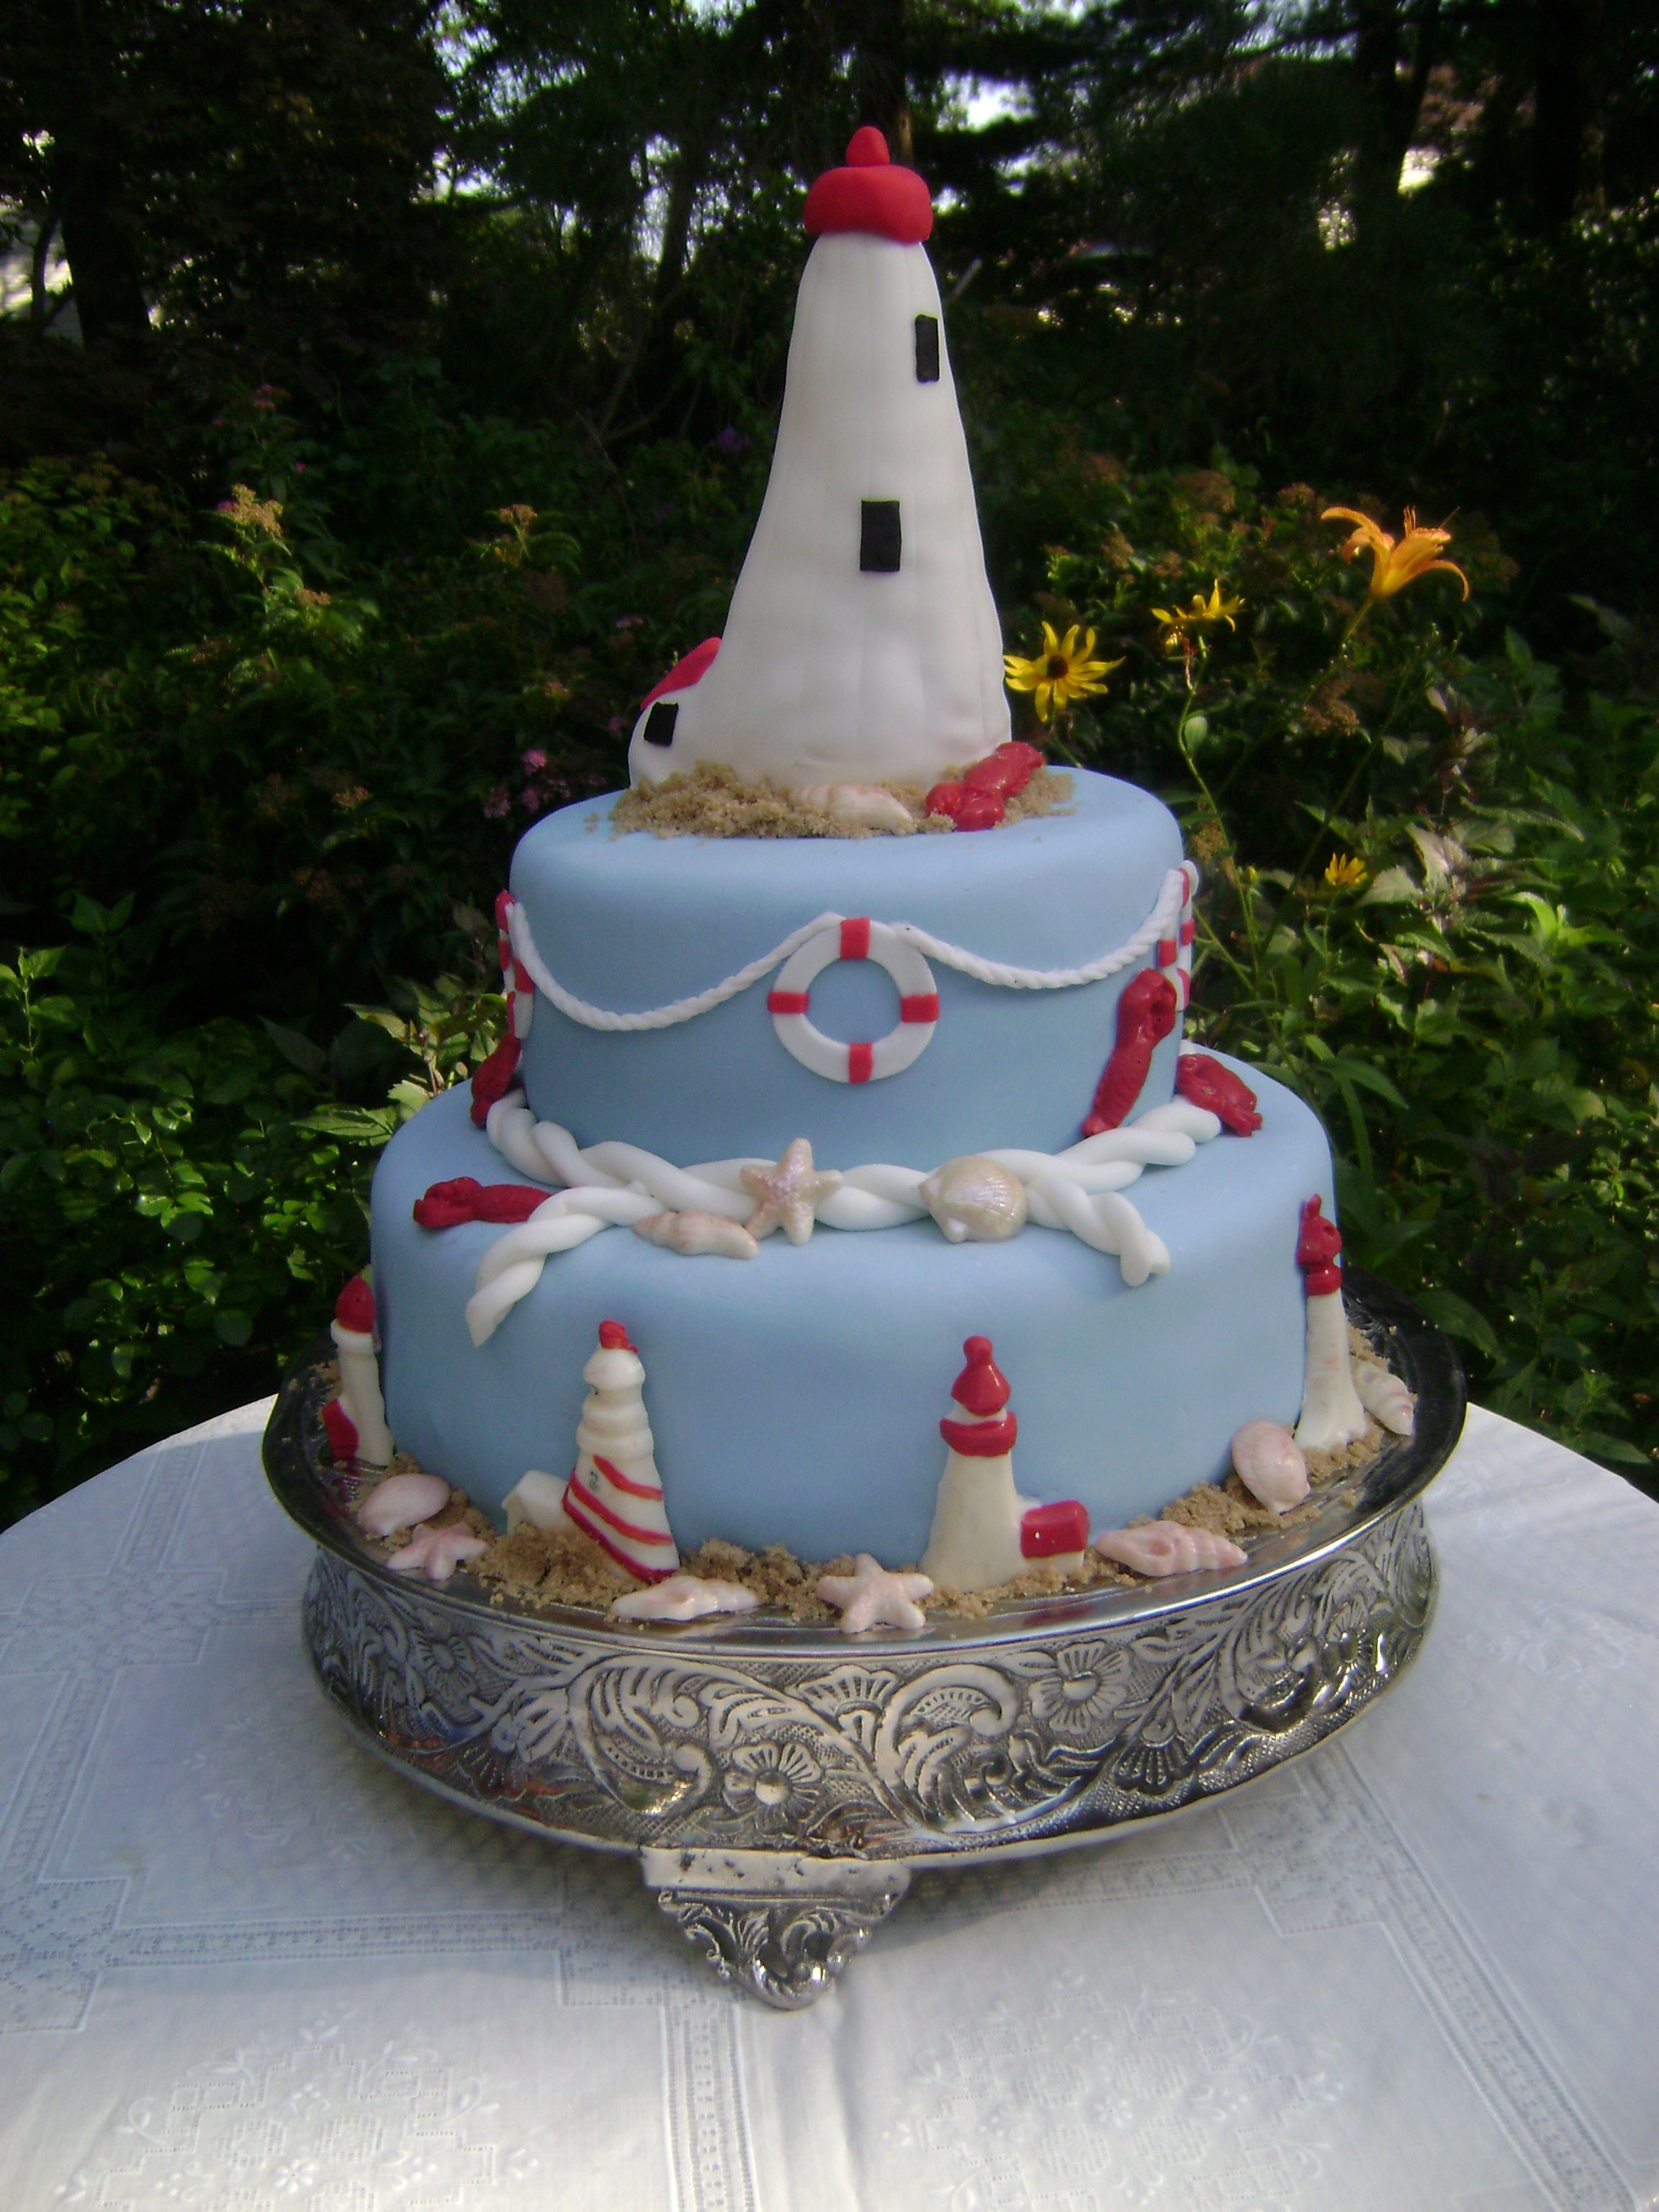 Lighthouse cake nautical themed cake for my dad 60th birthday